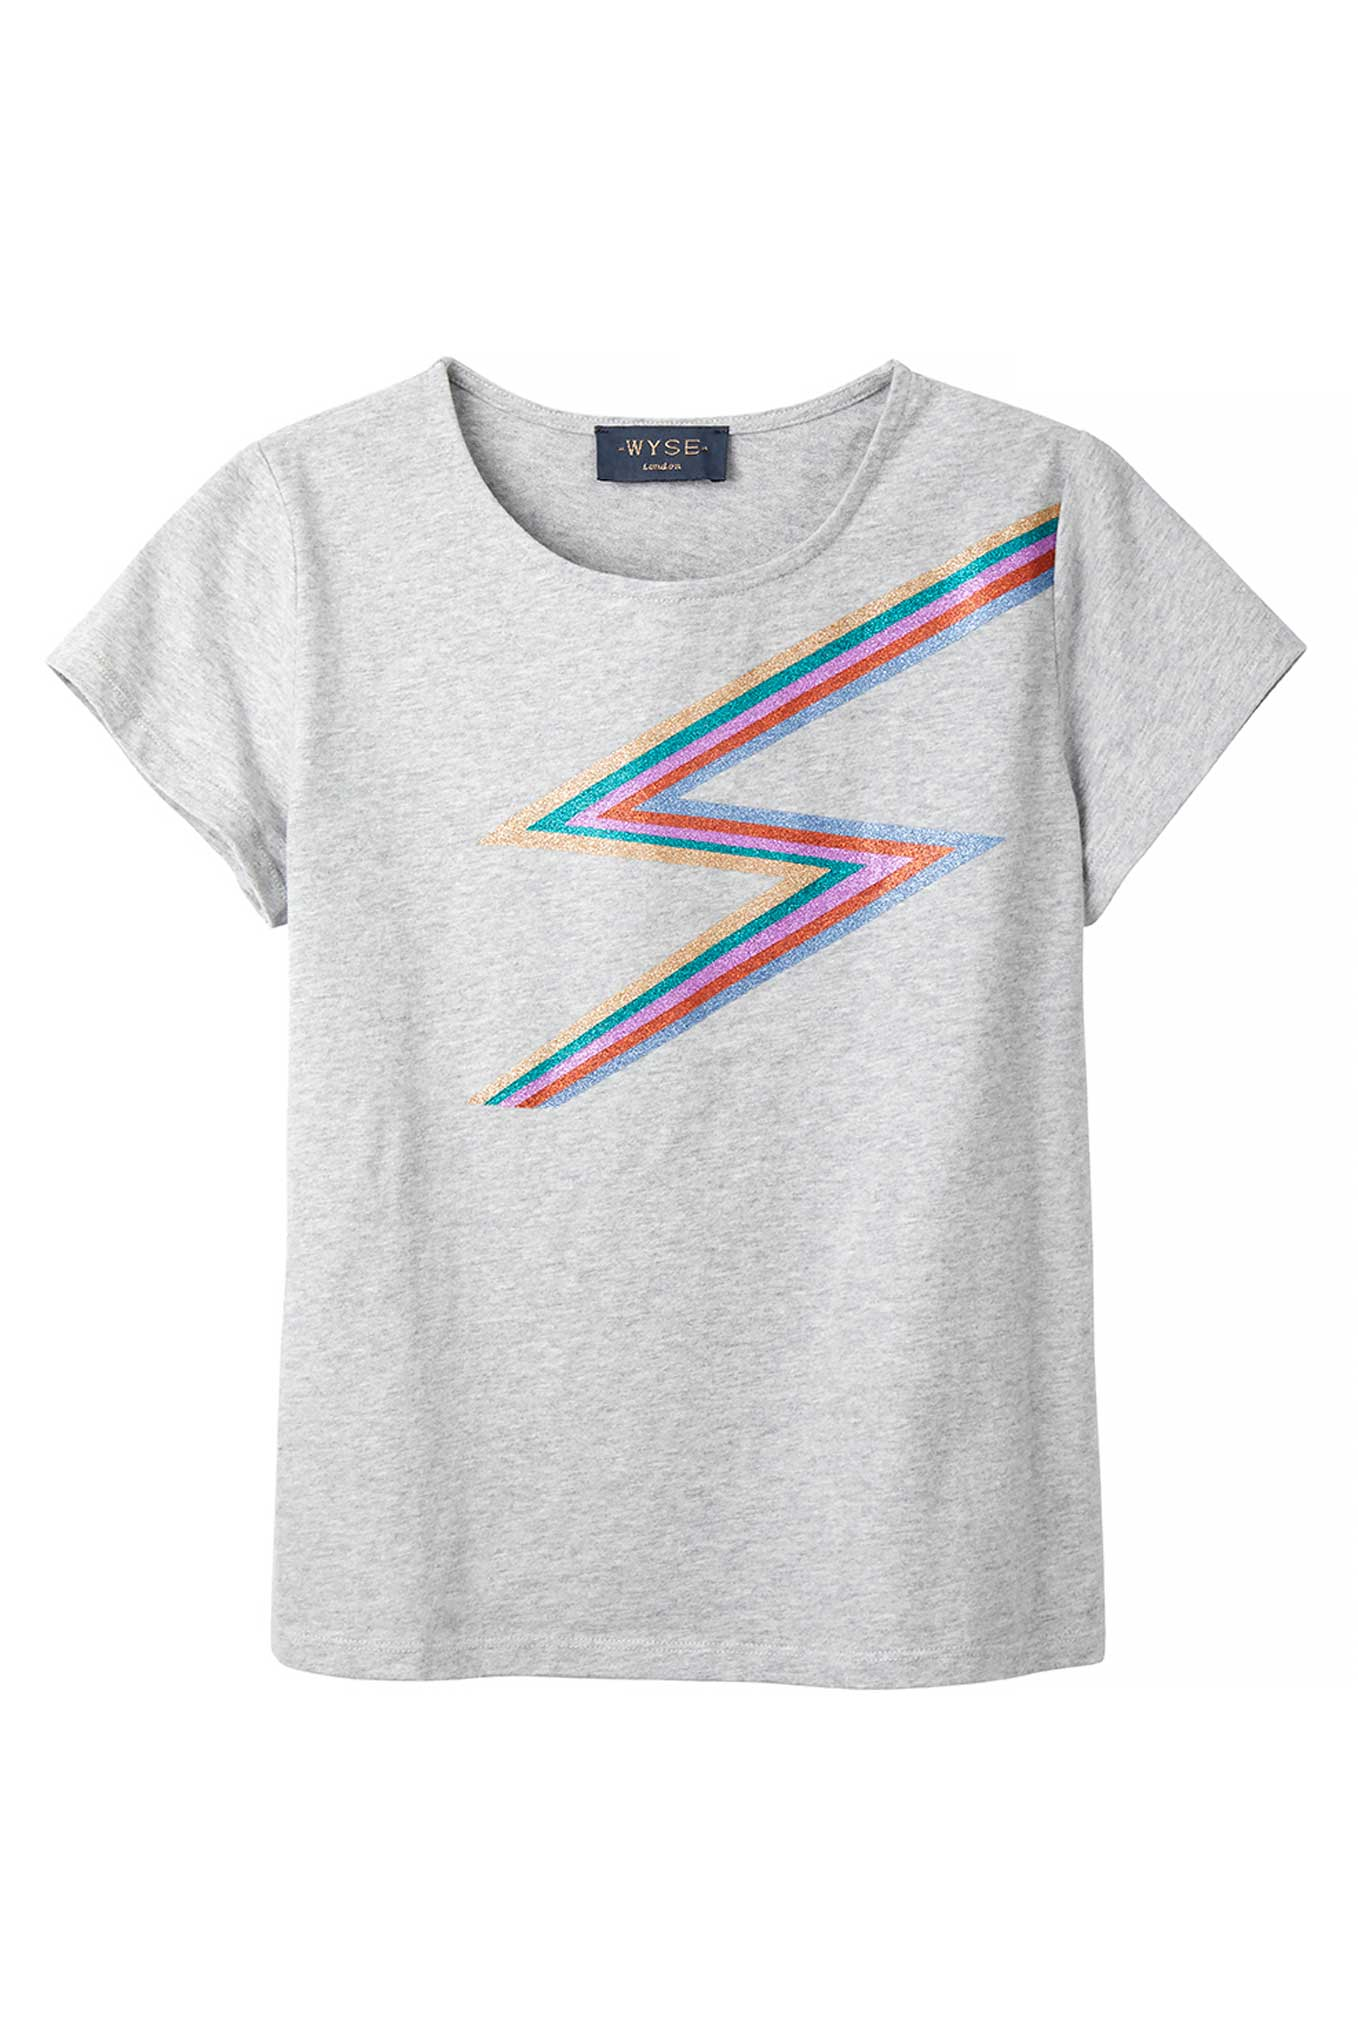 Rainbow Lightning Tee - Grey